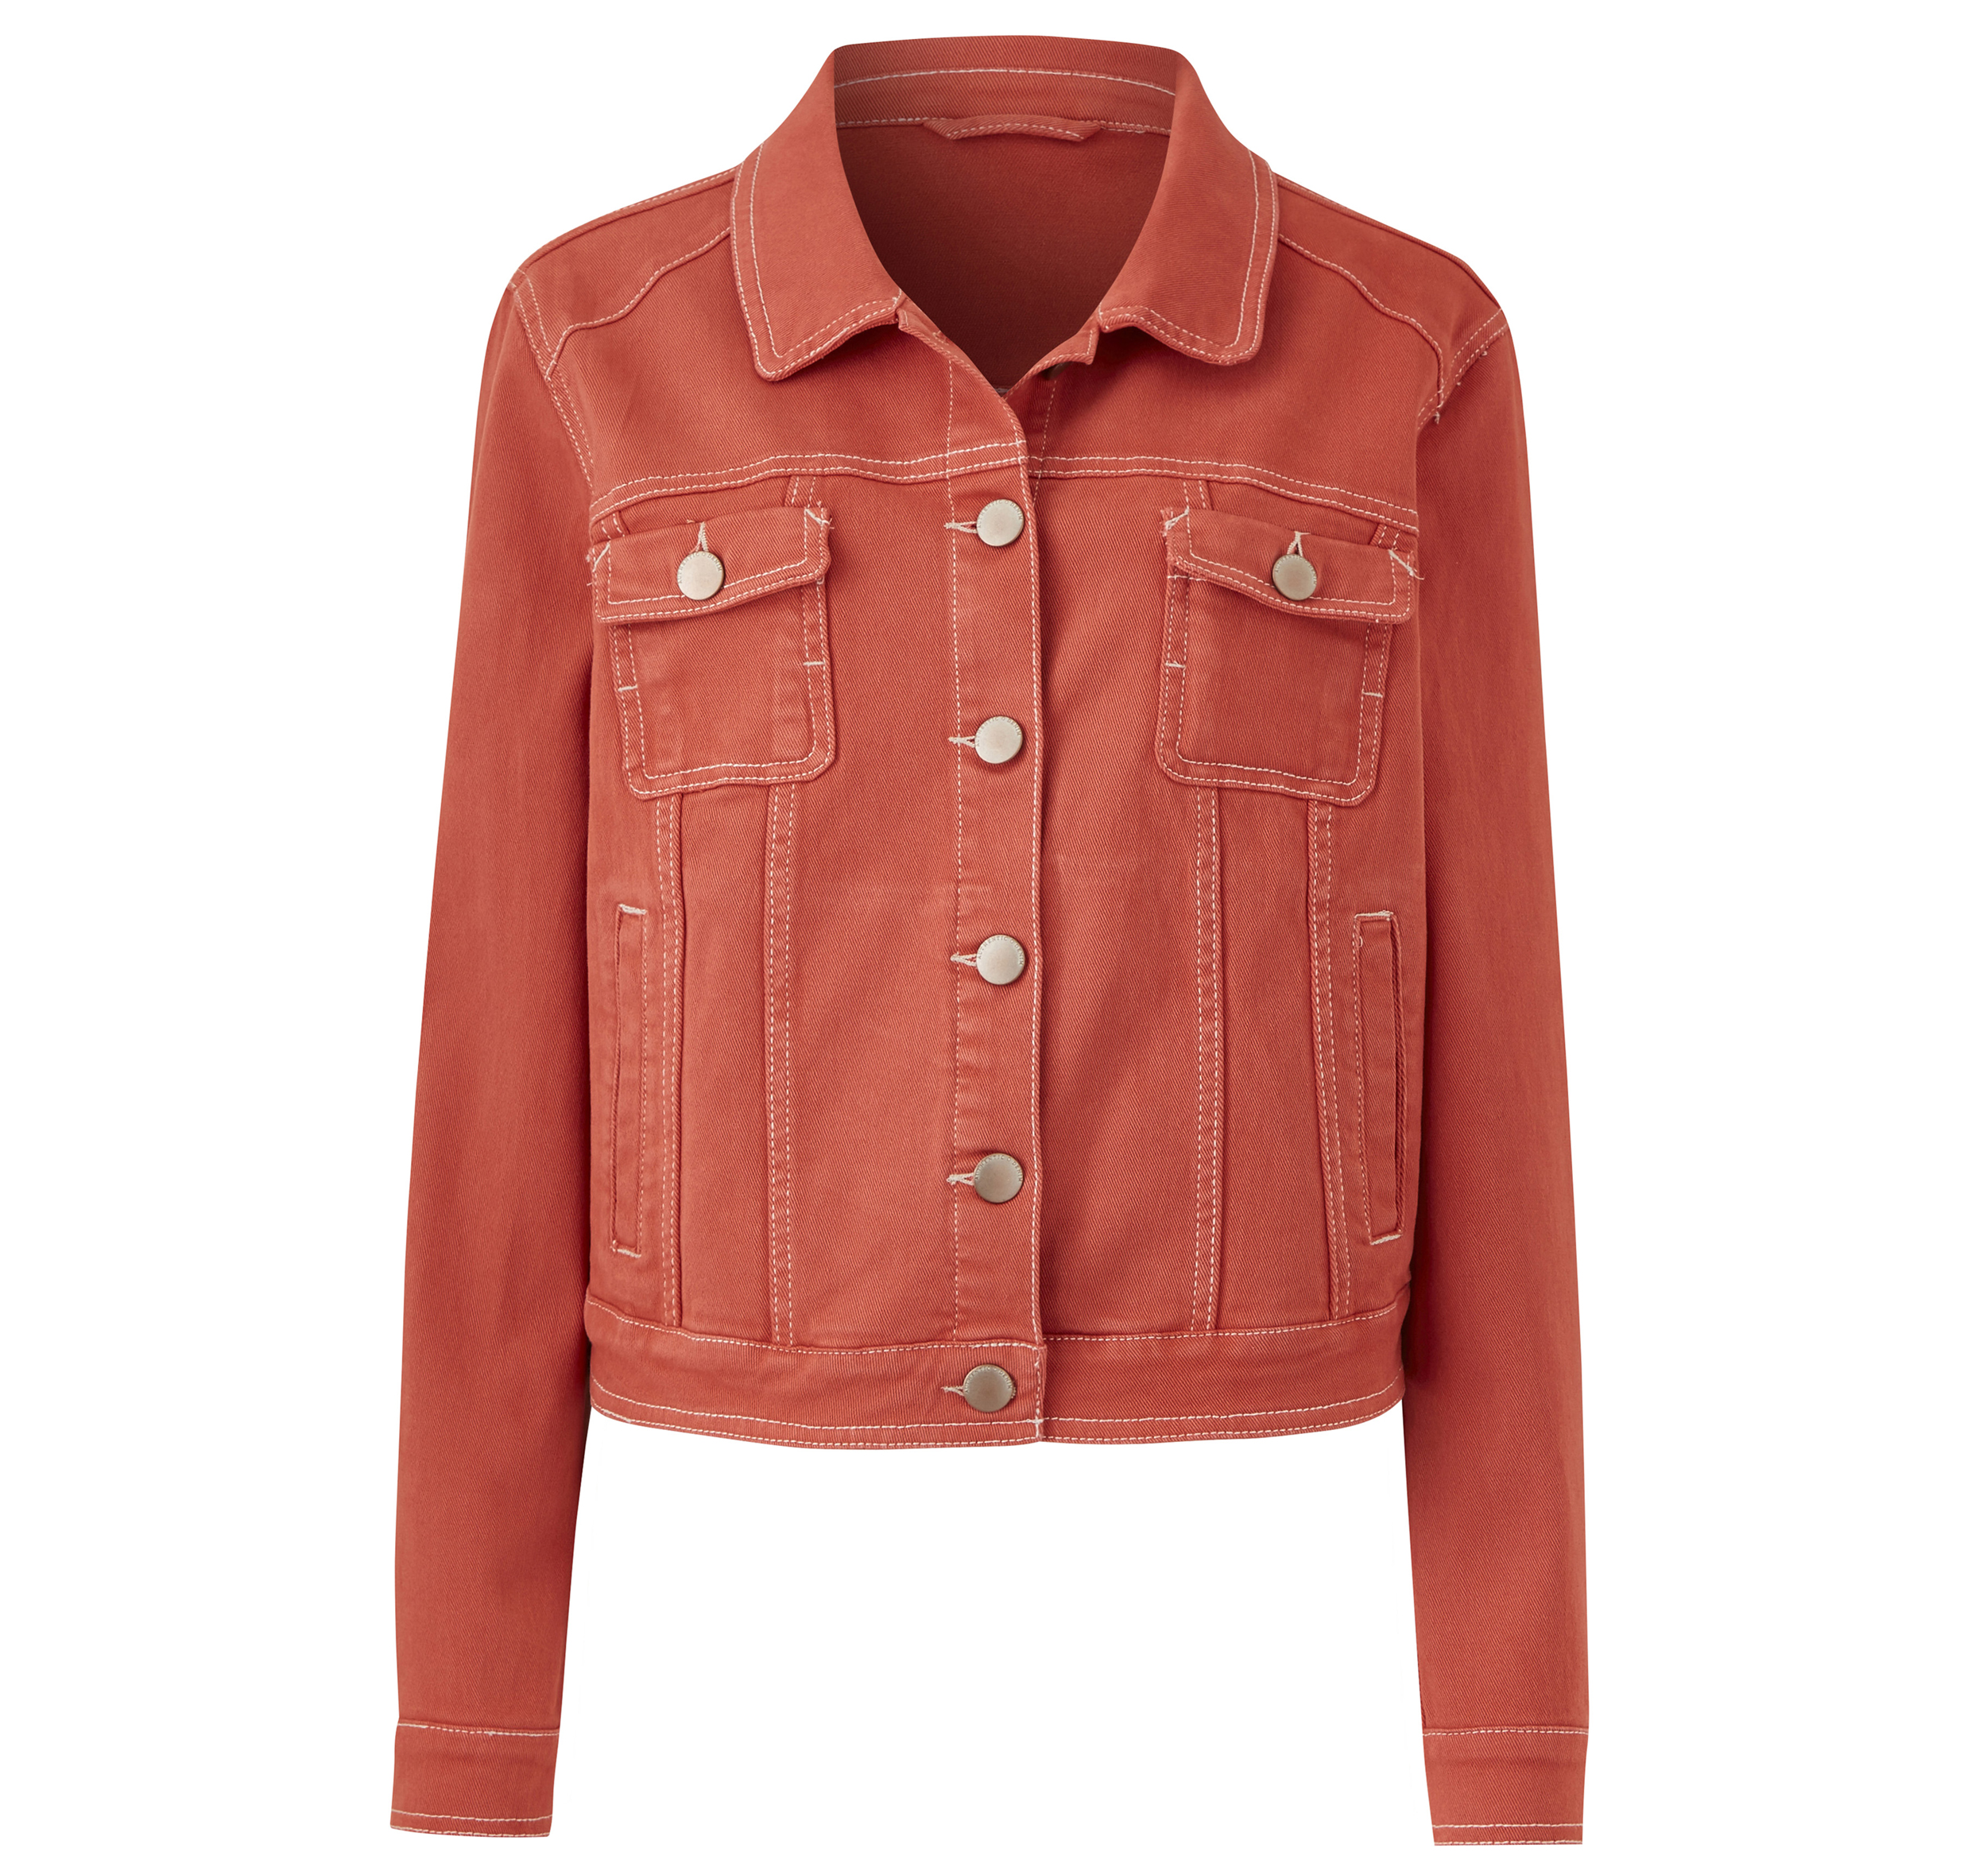 JD Williams Terracotta Western Style Denim Jacket